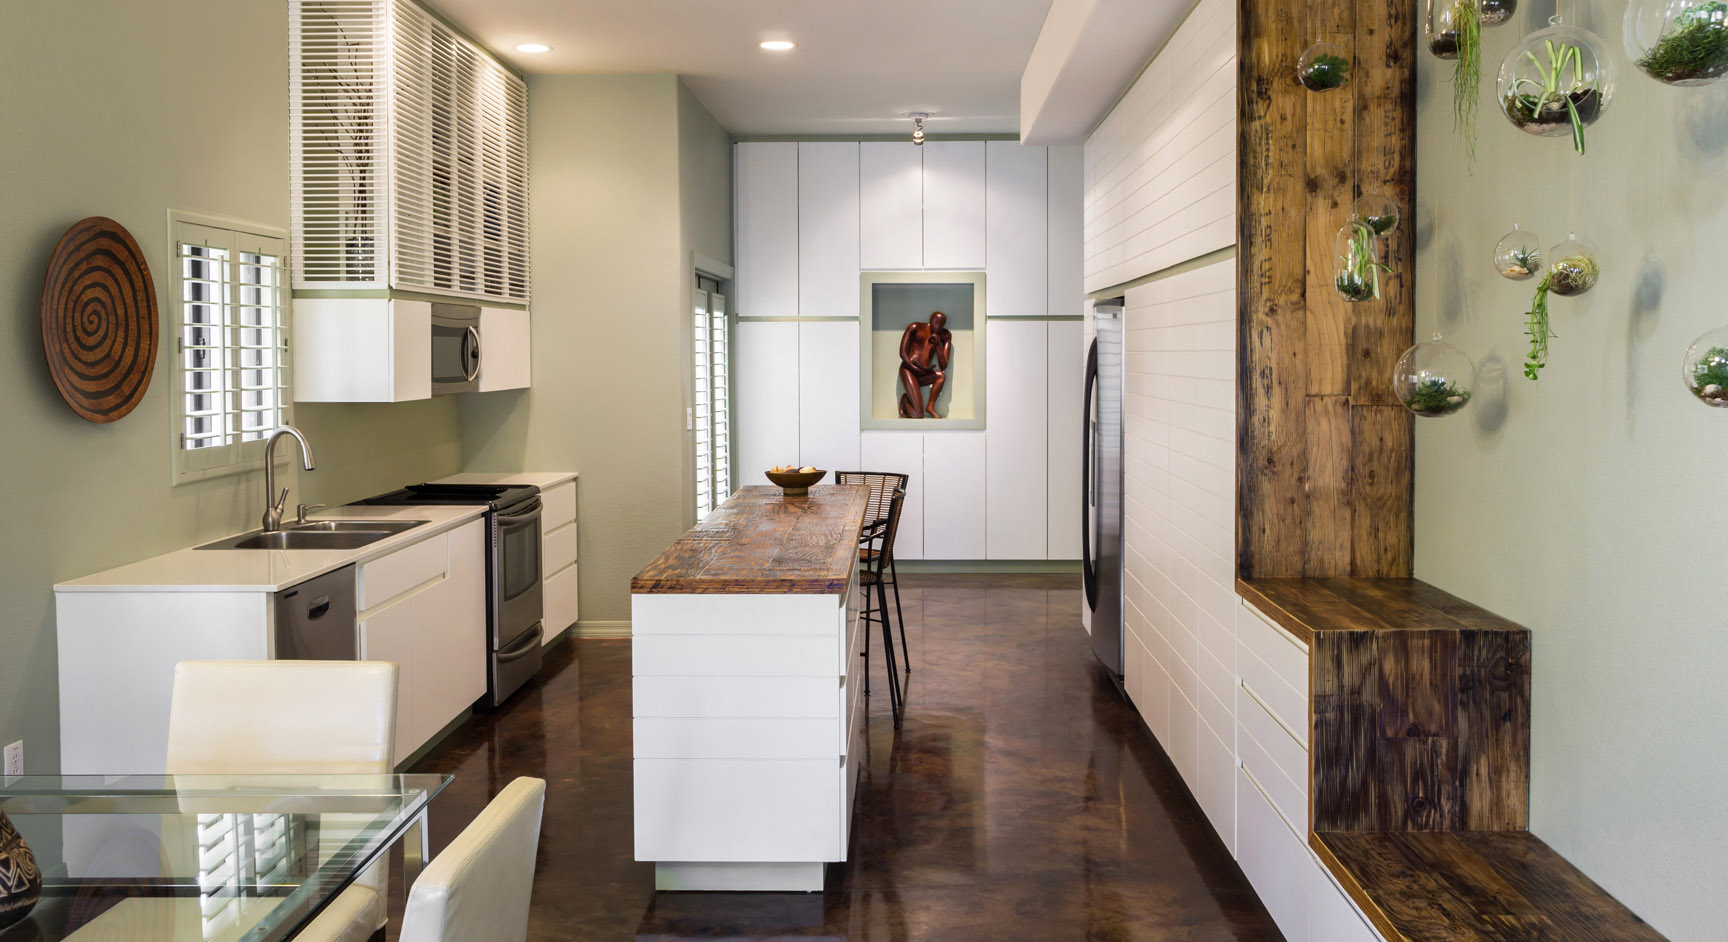 rustic shaker kitchen remodel with reclaimed countertop by paul rene furniture and cabintry phoenix az